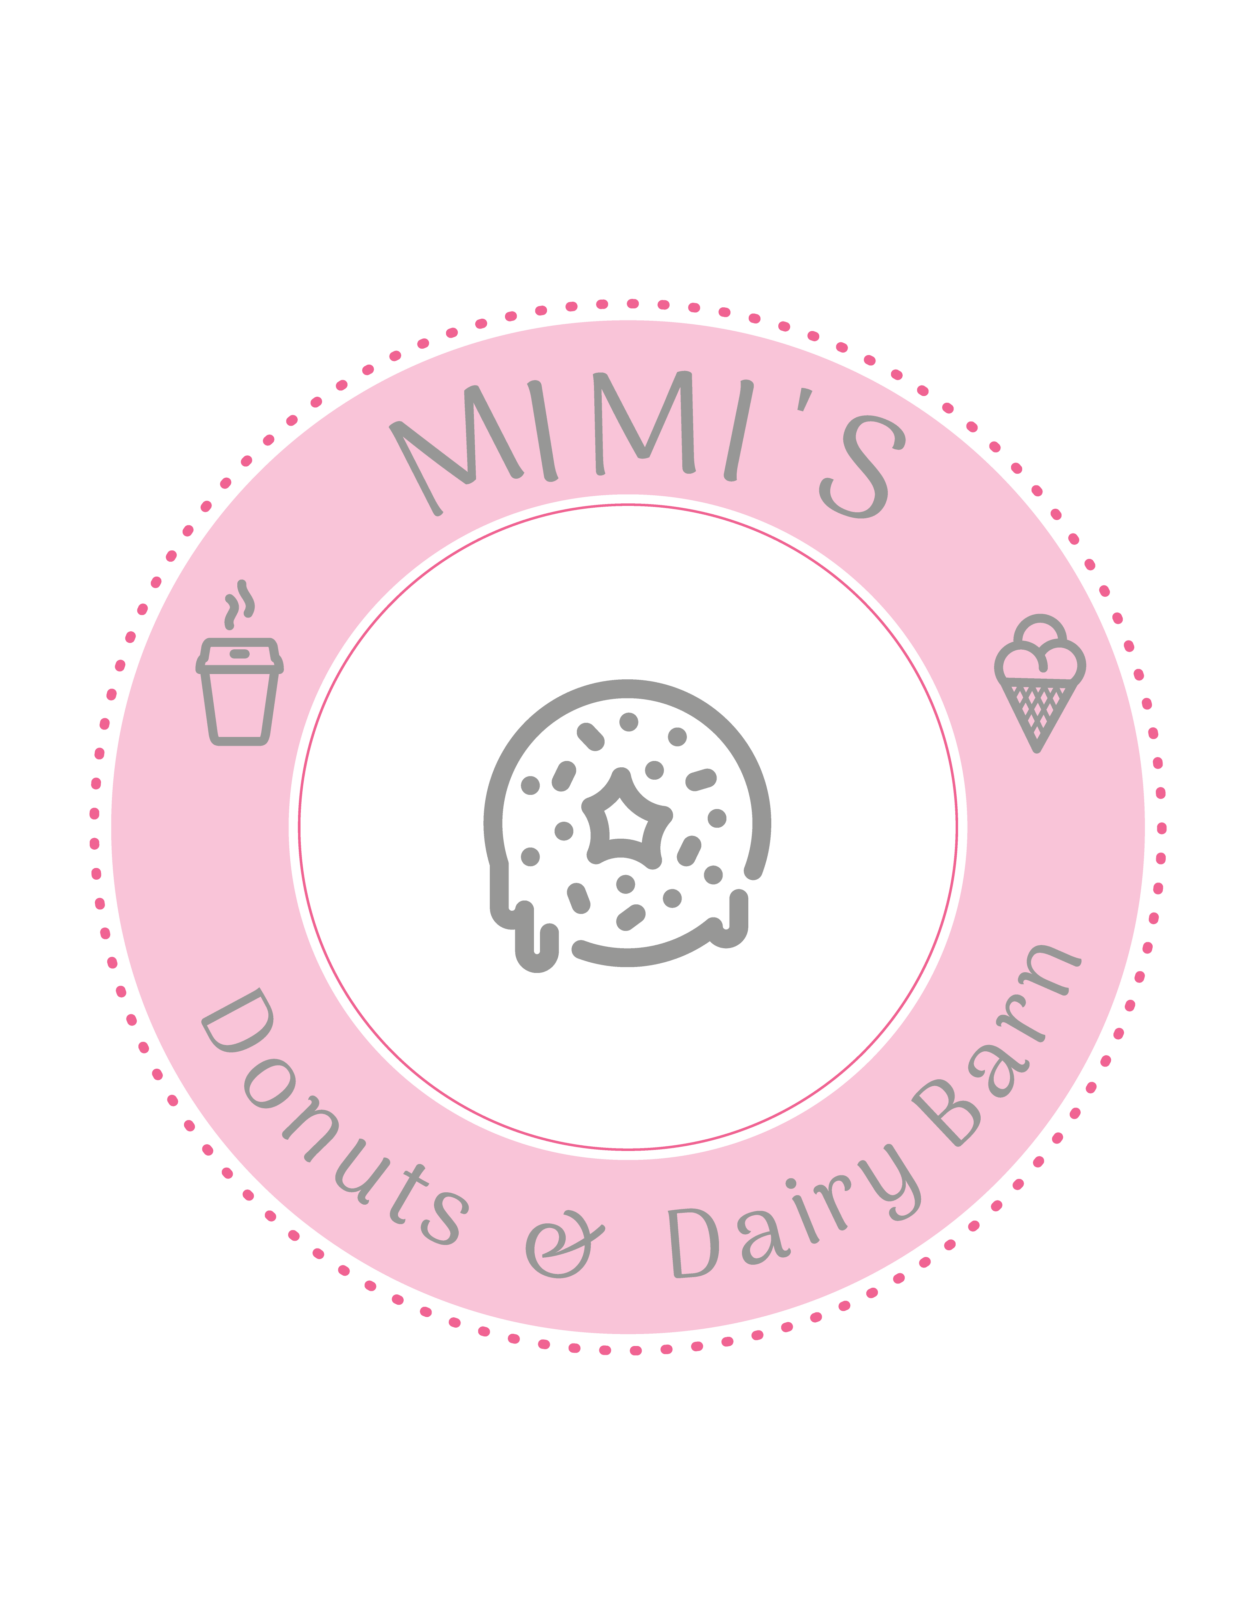 Mimi's Donuts and Dairy Barn logo - Business in Manotick